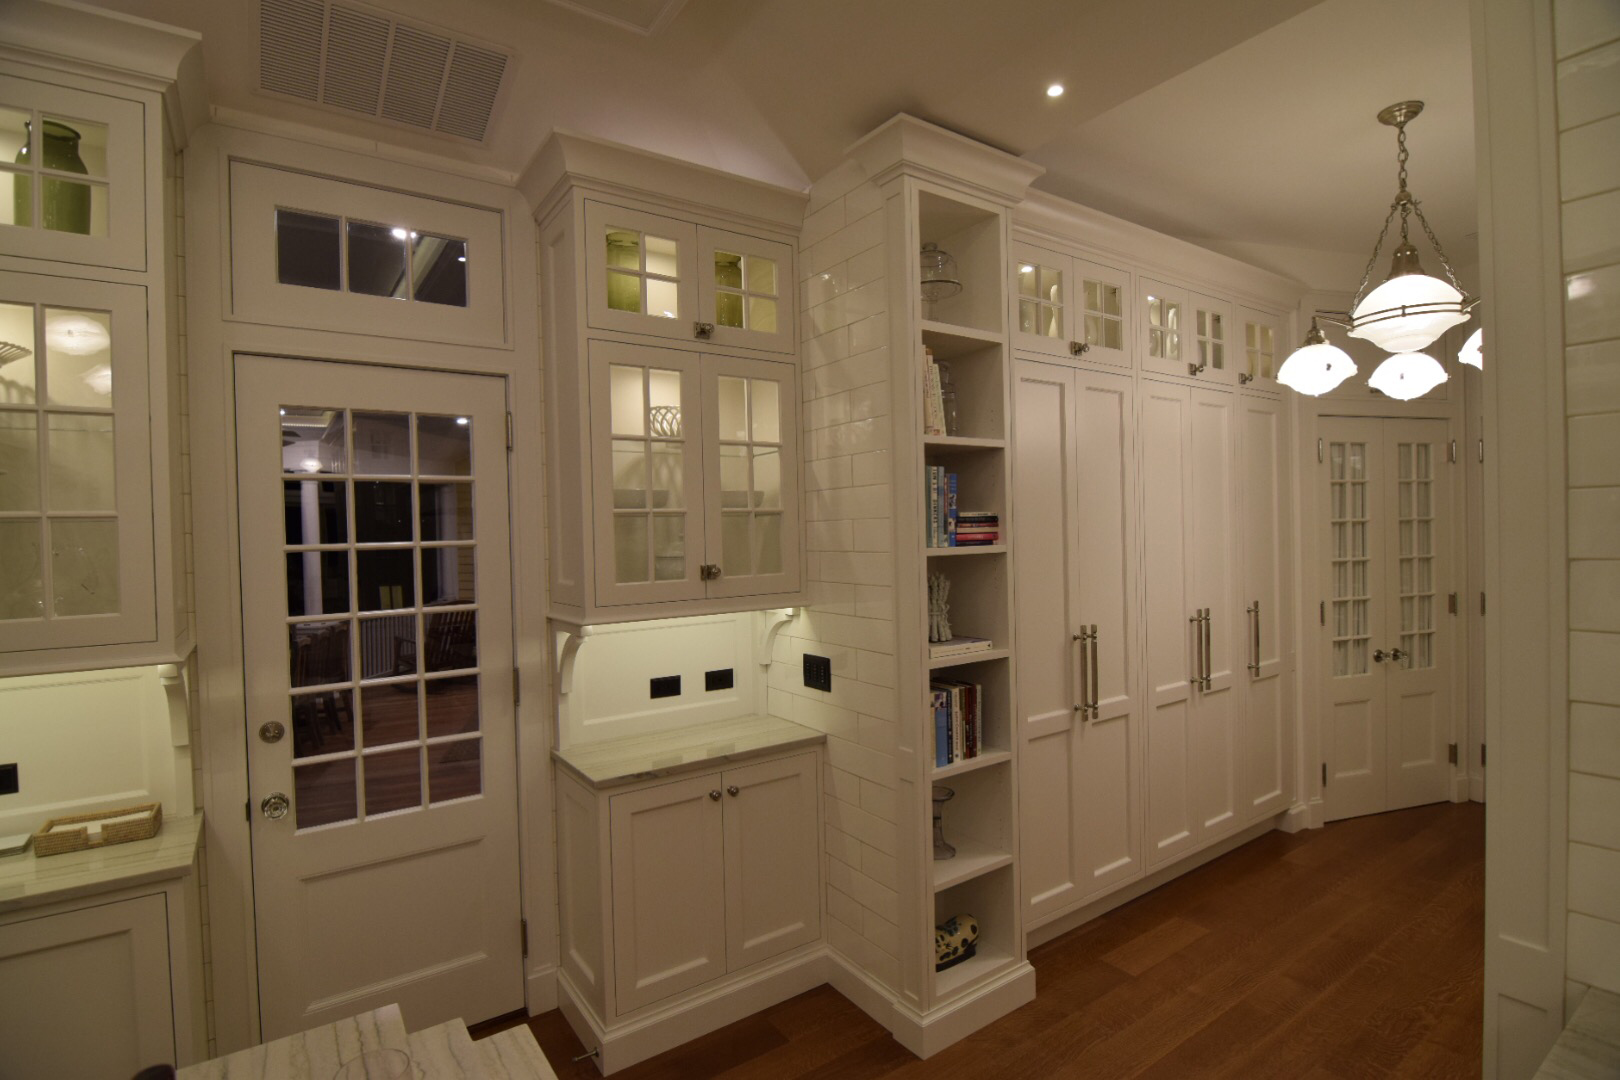 custom-traditional-kitchen-face-frame-with-inset-cabinet-doors-and-custom-architectural-doors.jpg